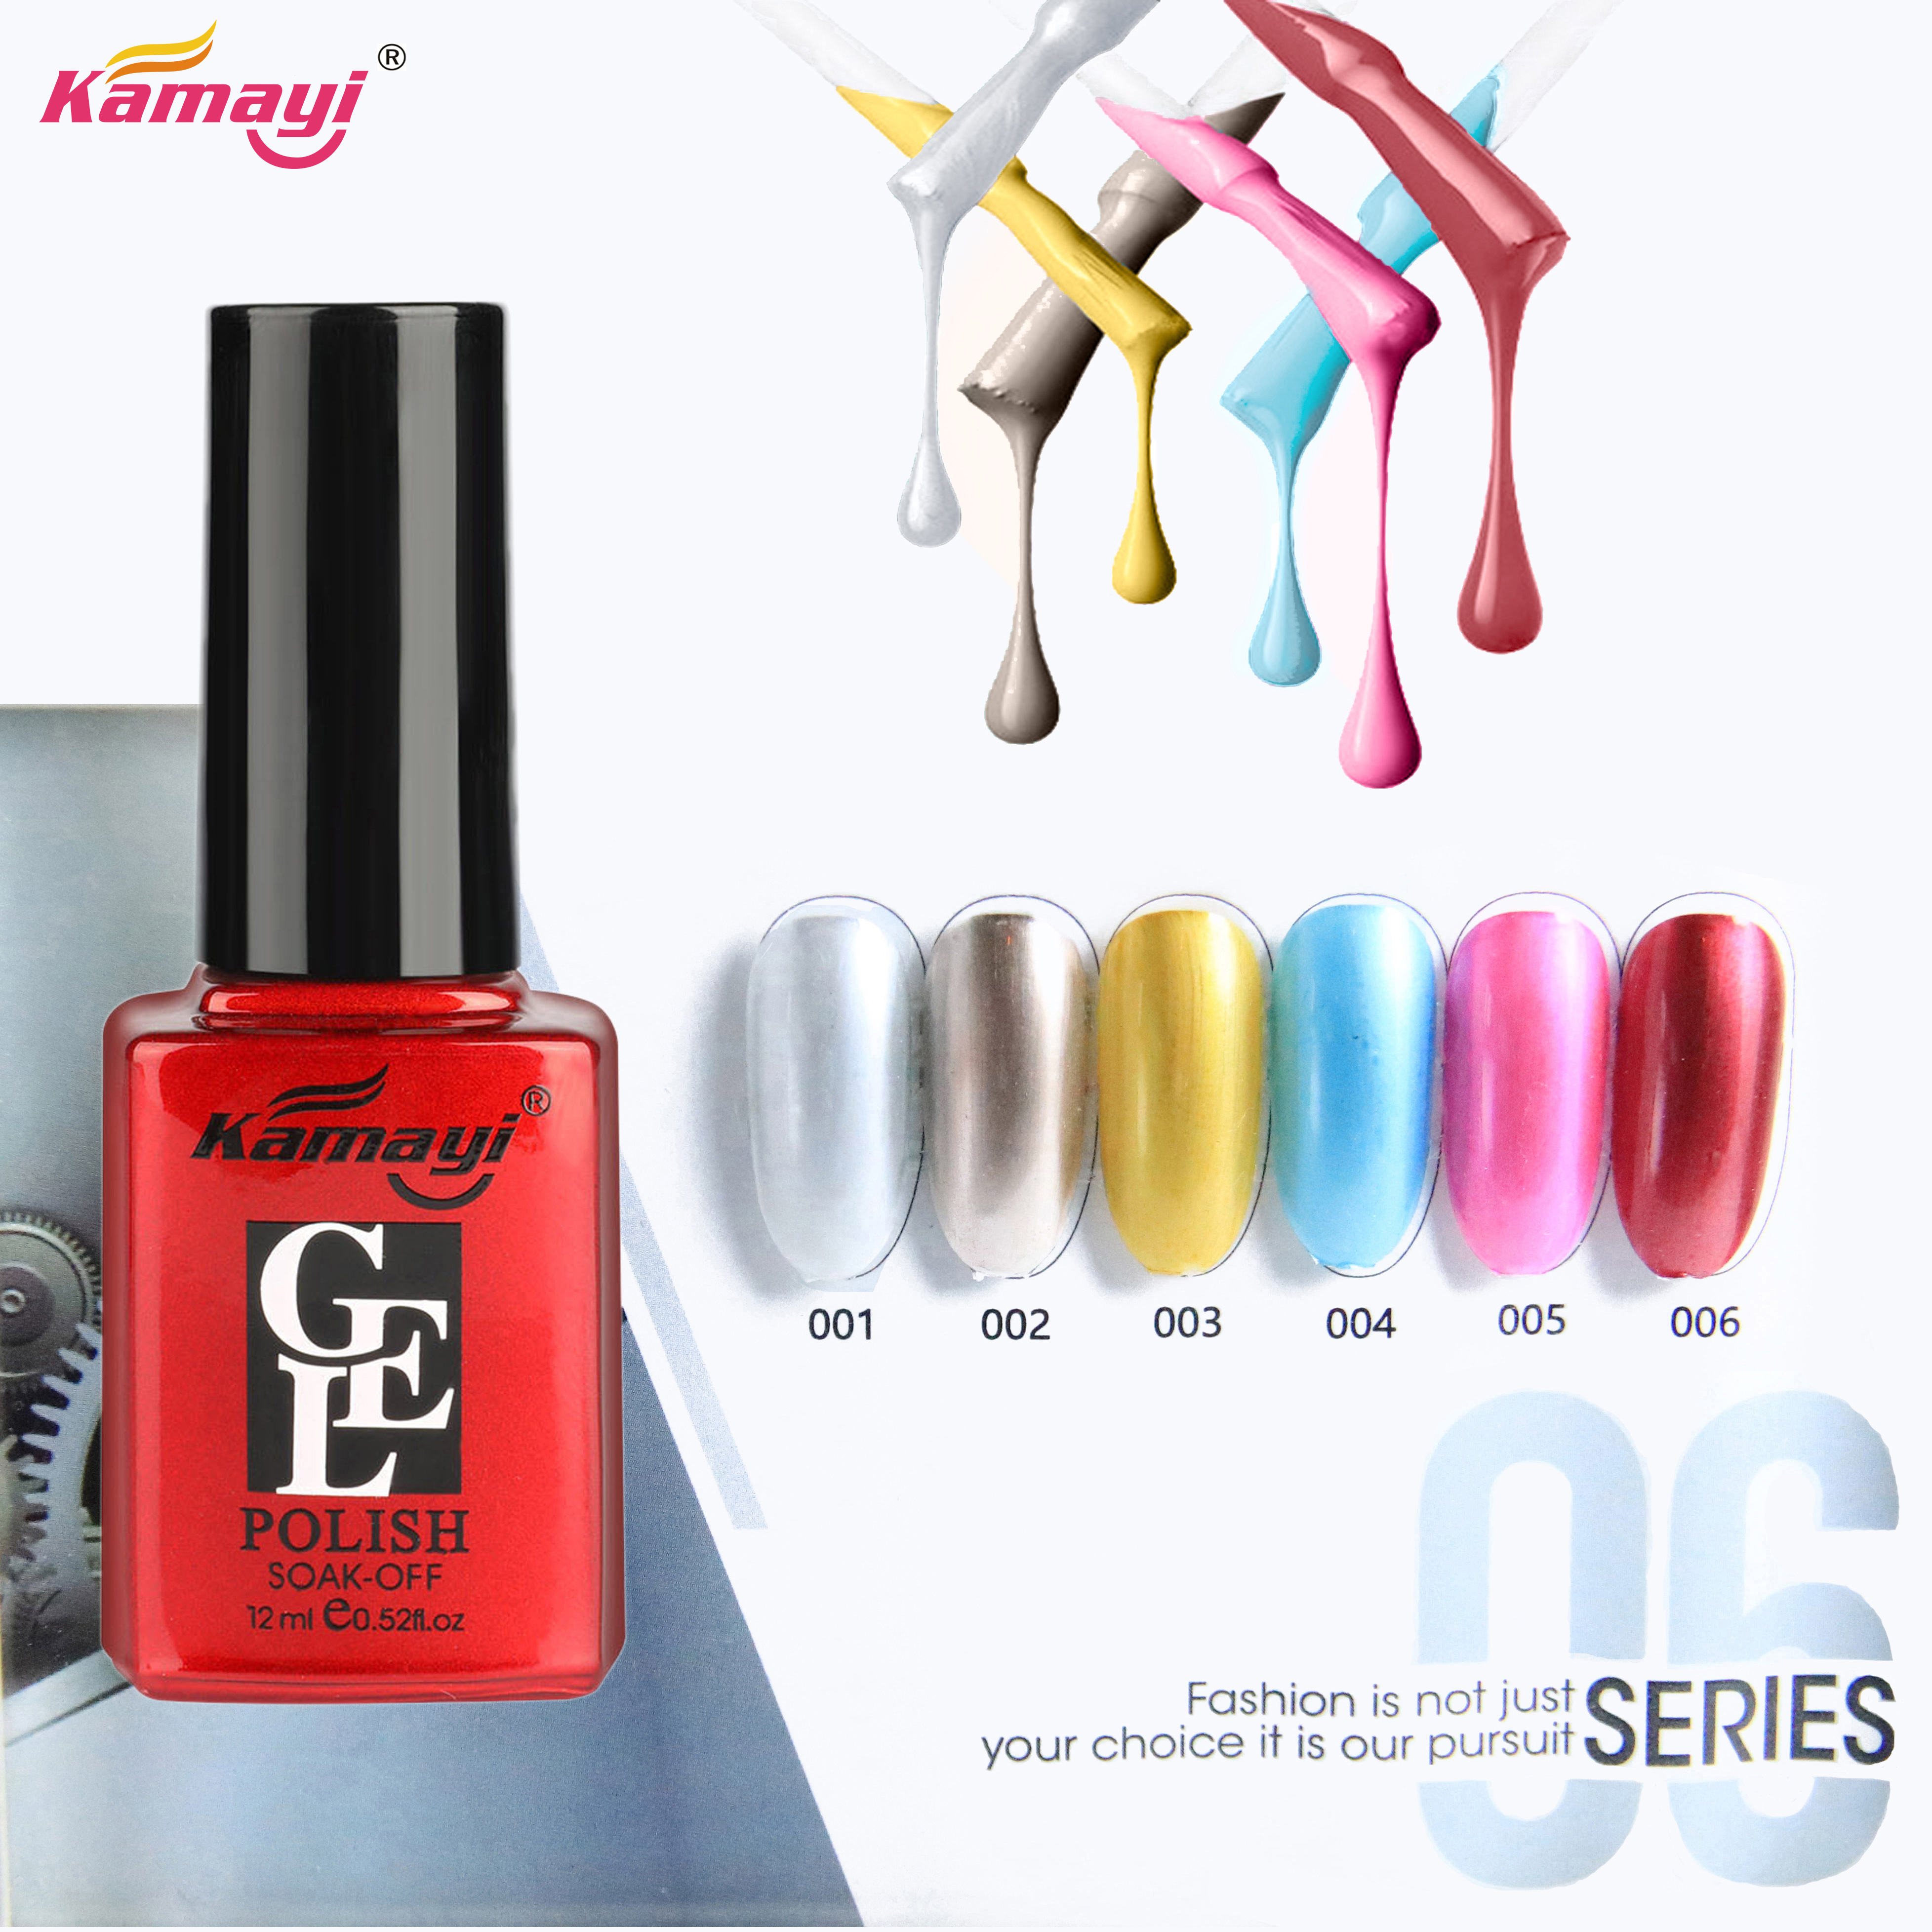 Kamayi Wholesale Factory Price New Arrival High Quality Nail lina UV Gel, 12ml red bottle mirror mental effect nail polish